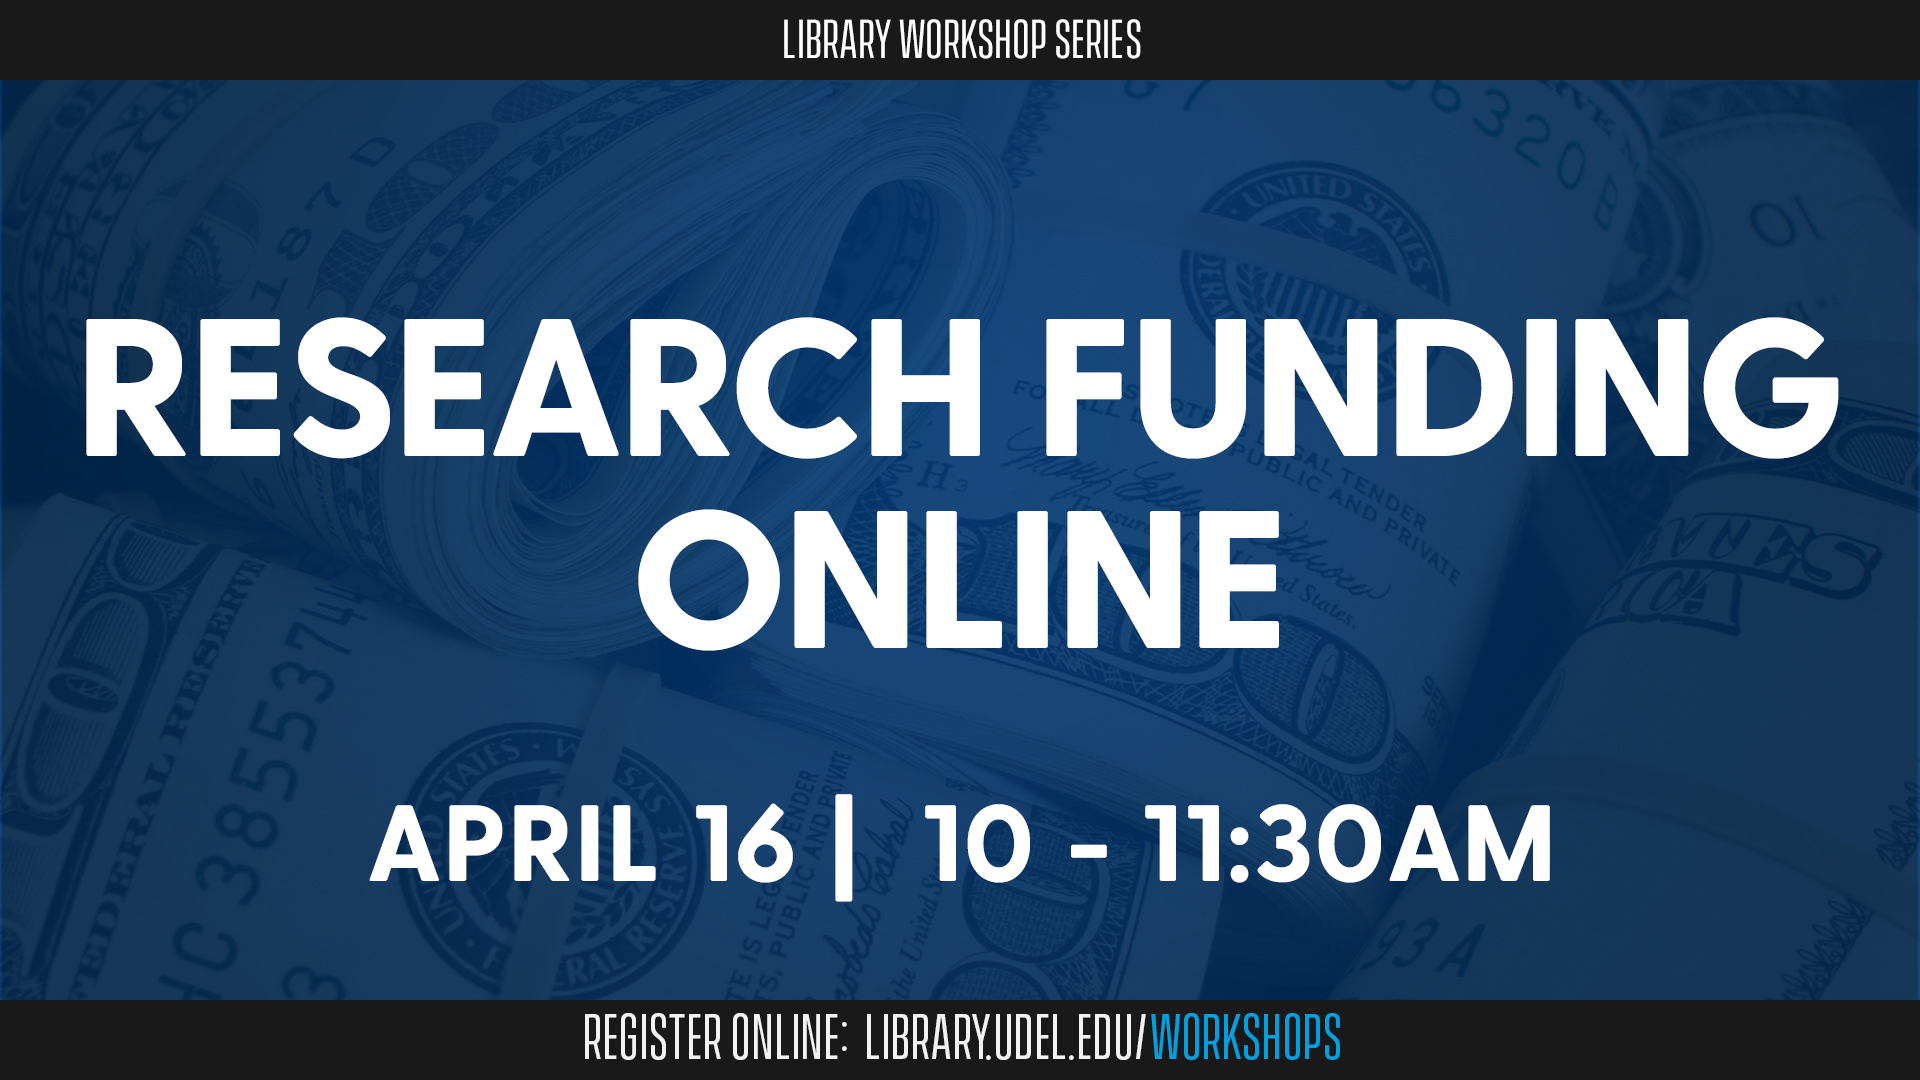 Promotional image for Research Funding Online